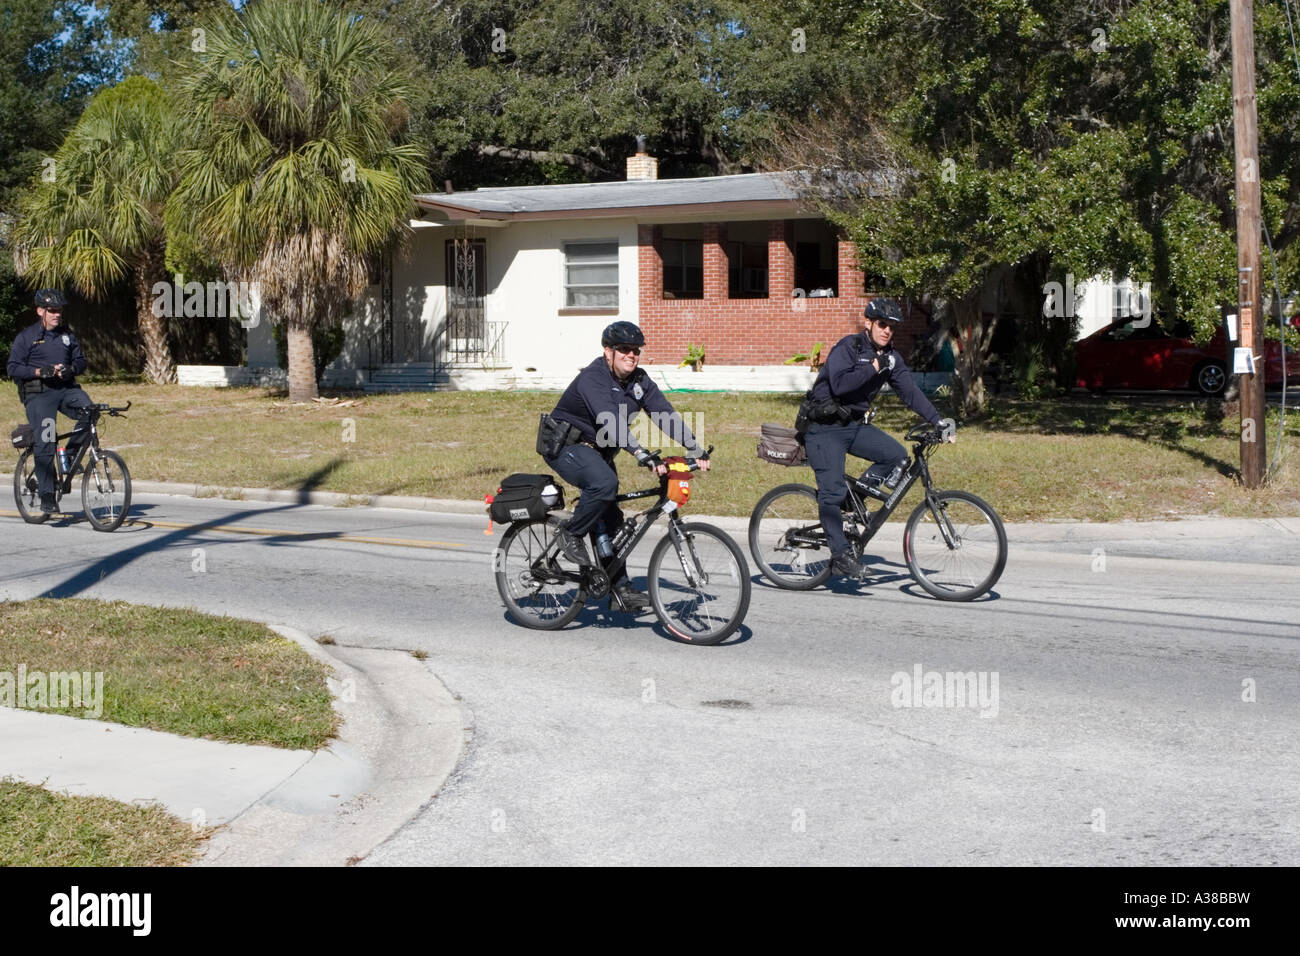 Two Bicycle Policeman Patrolling on a Residential Street Stock Photo